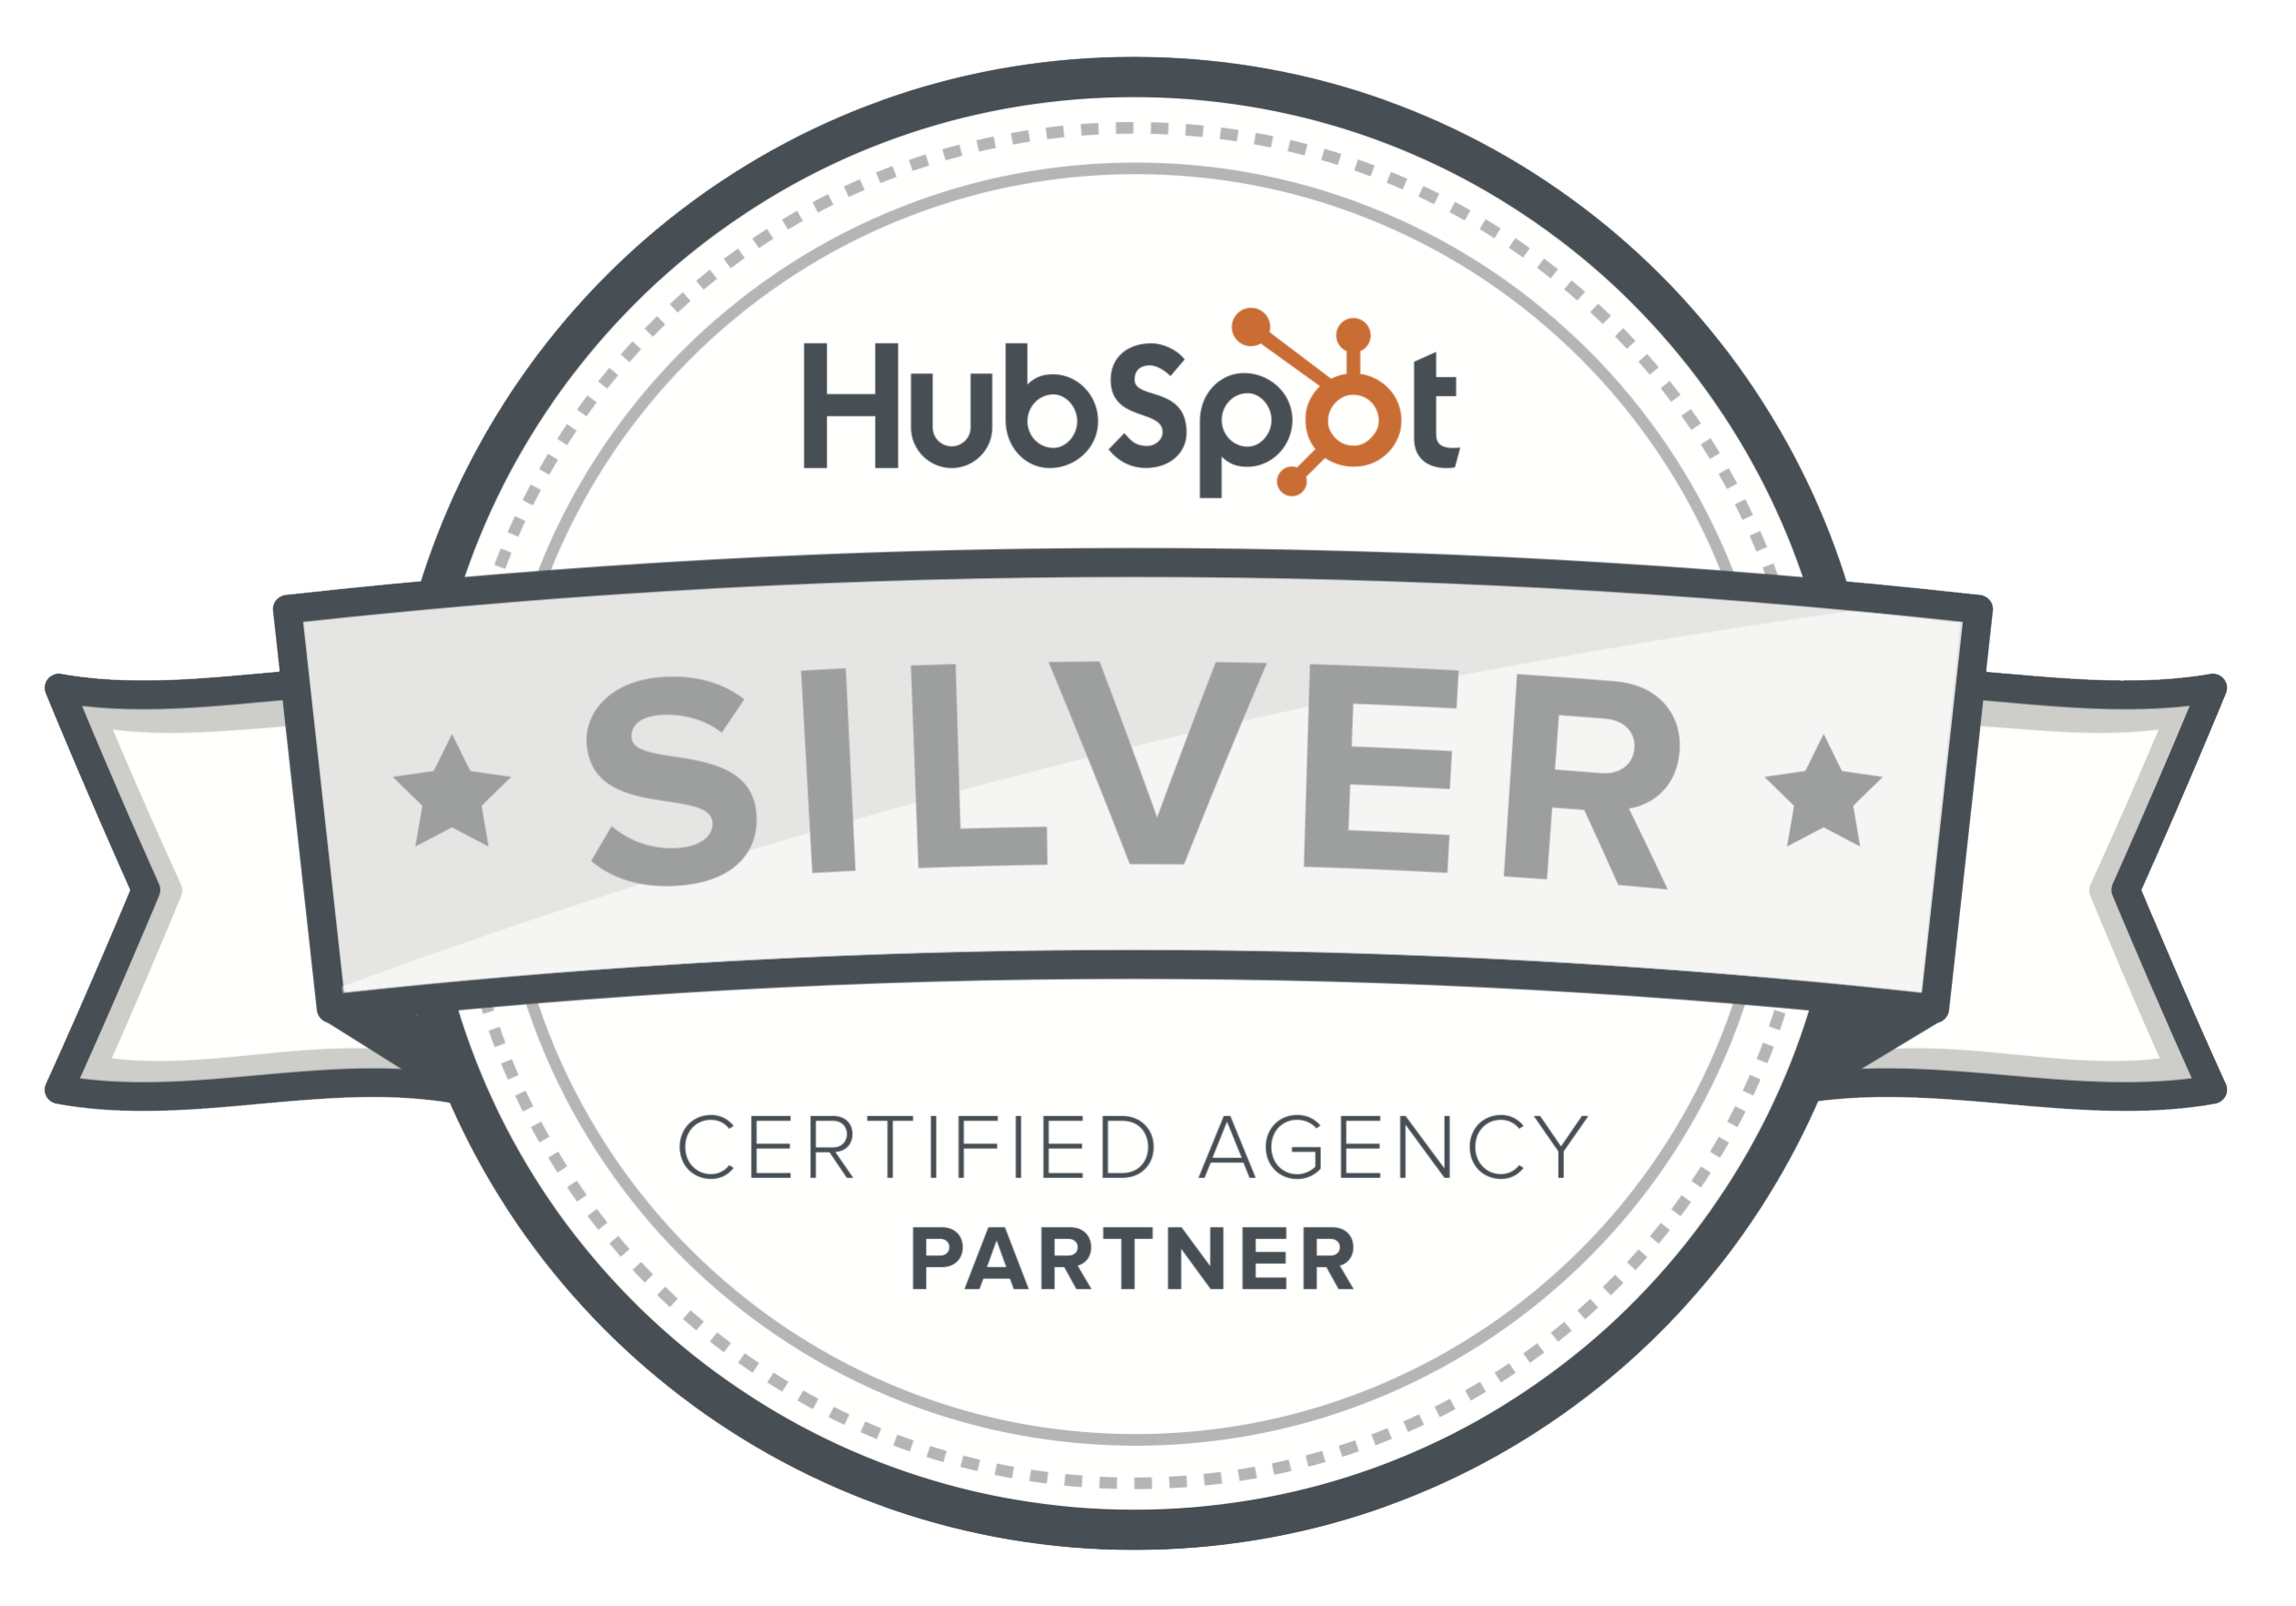 partner_badges_silver.png